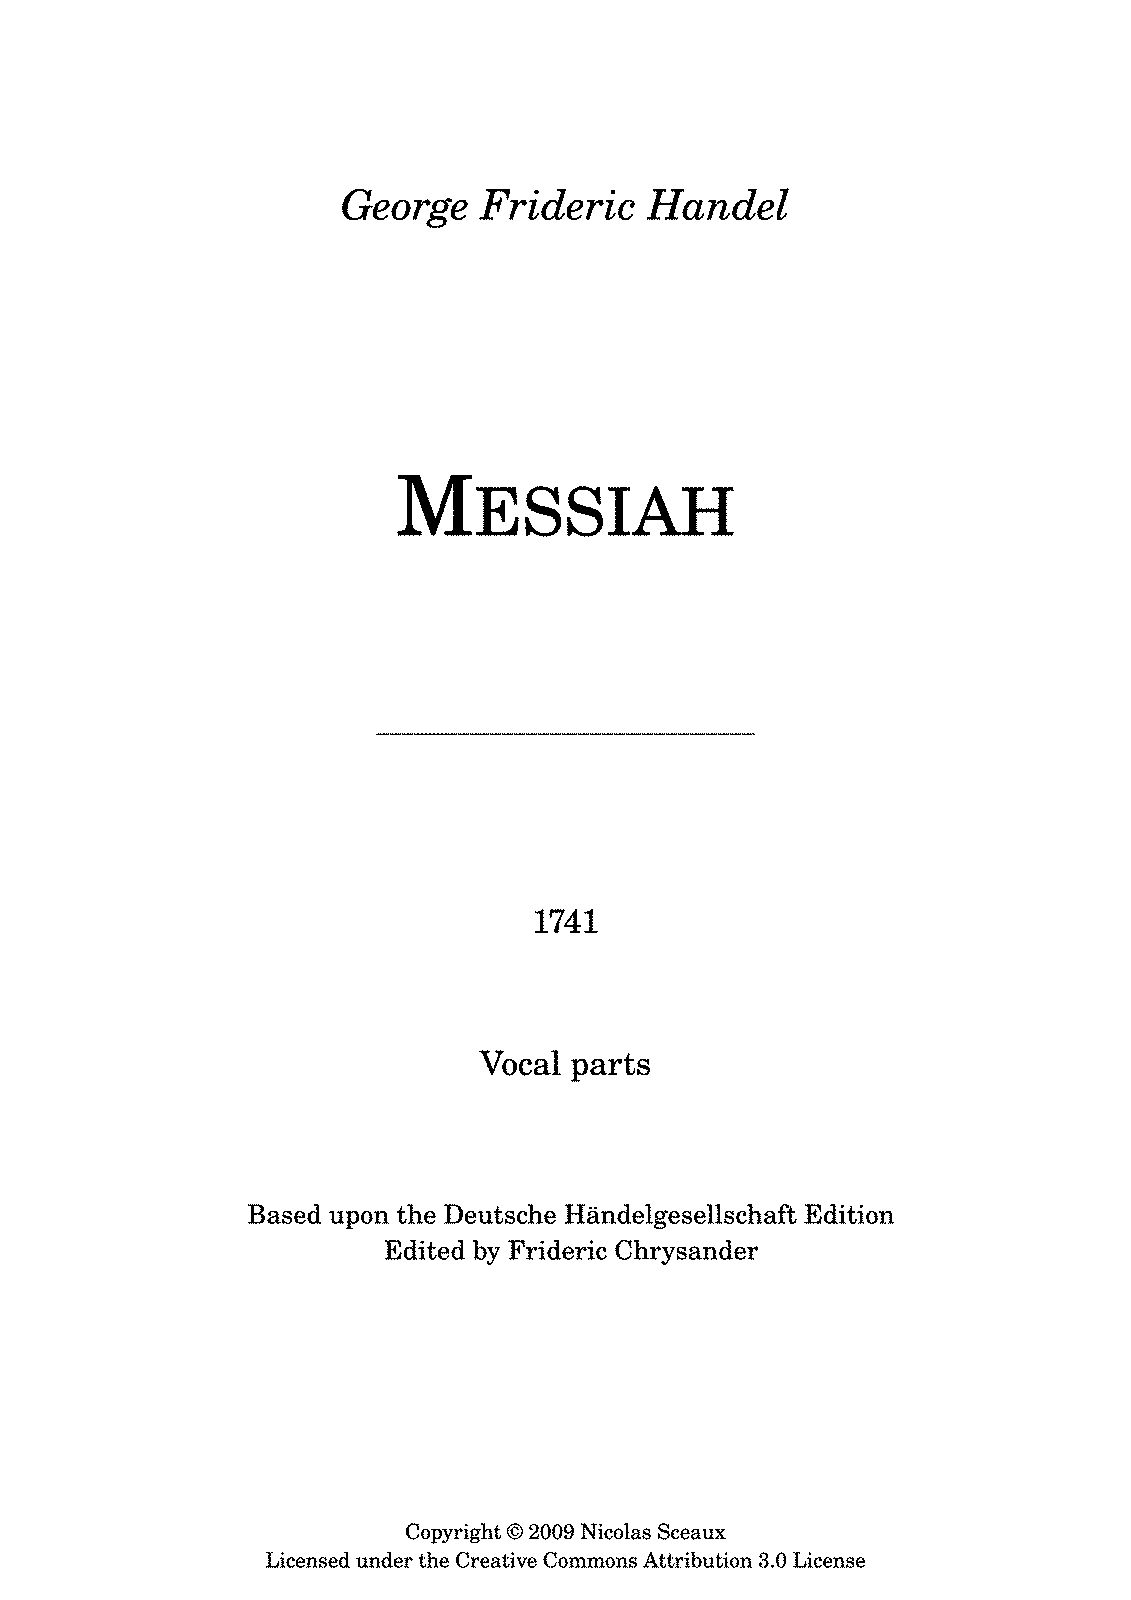 PMLP22568-Messiah-vocal.pdf